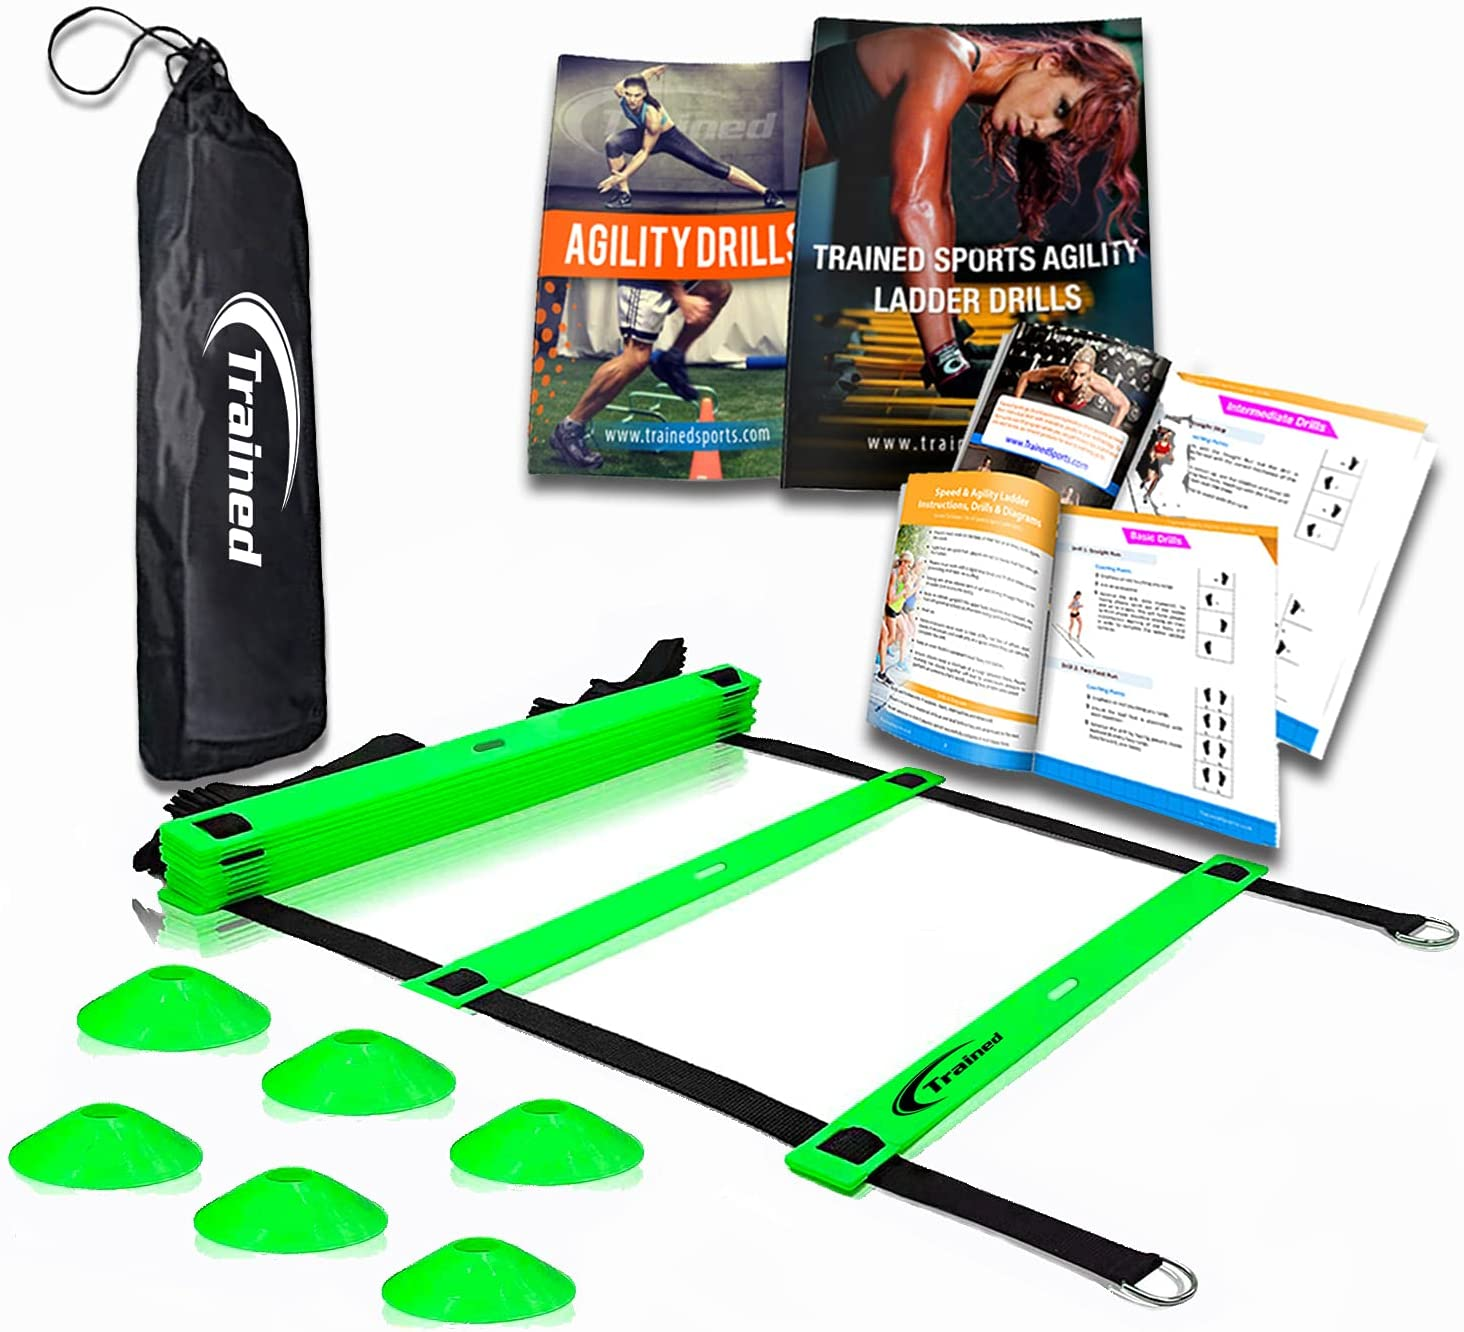 Trained Agility Ladder Bundle 6 Branded goods Cones e Drills Tucson Mall Sports 2